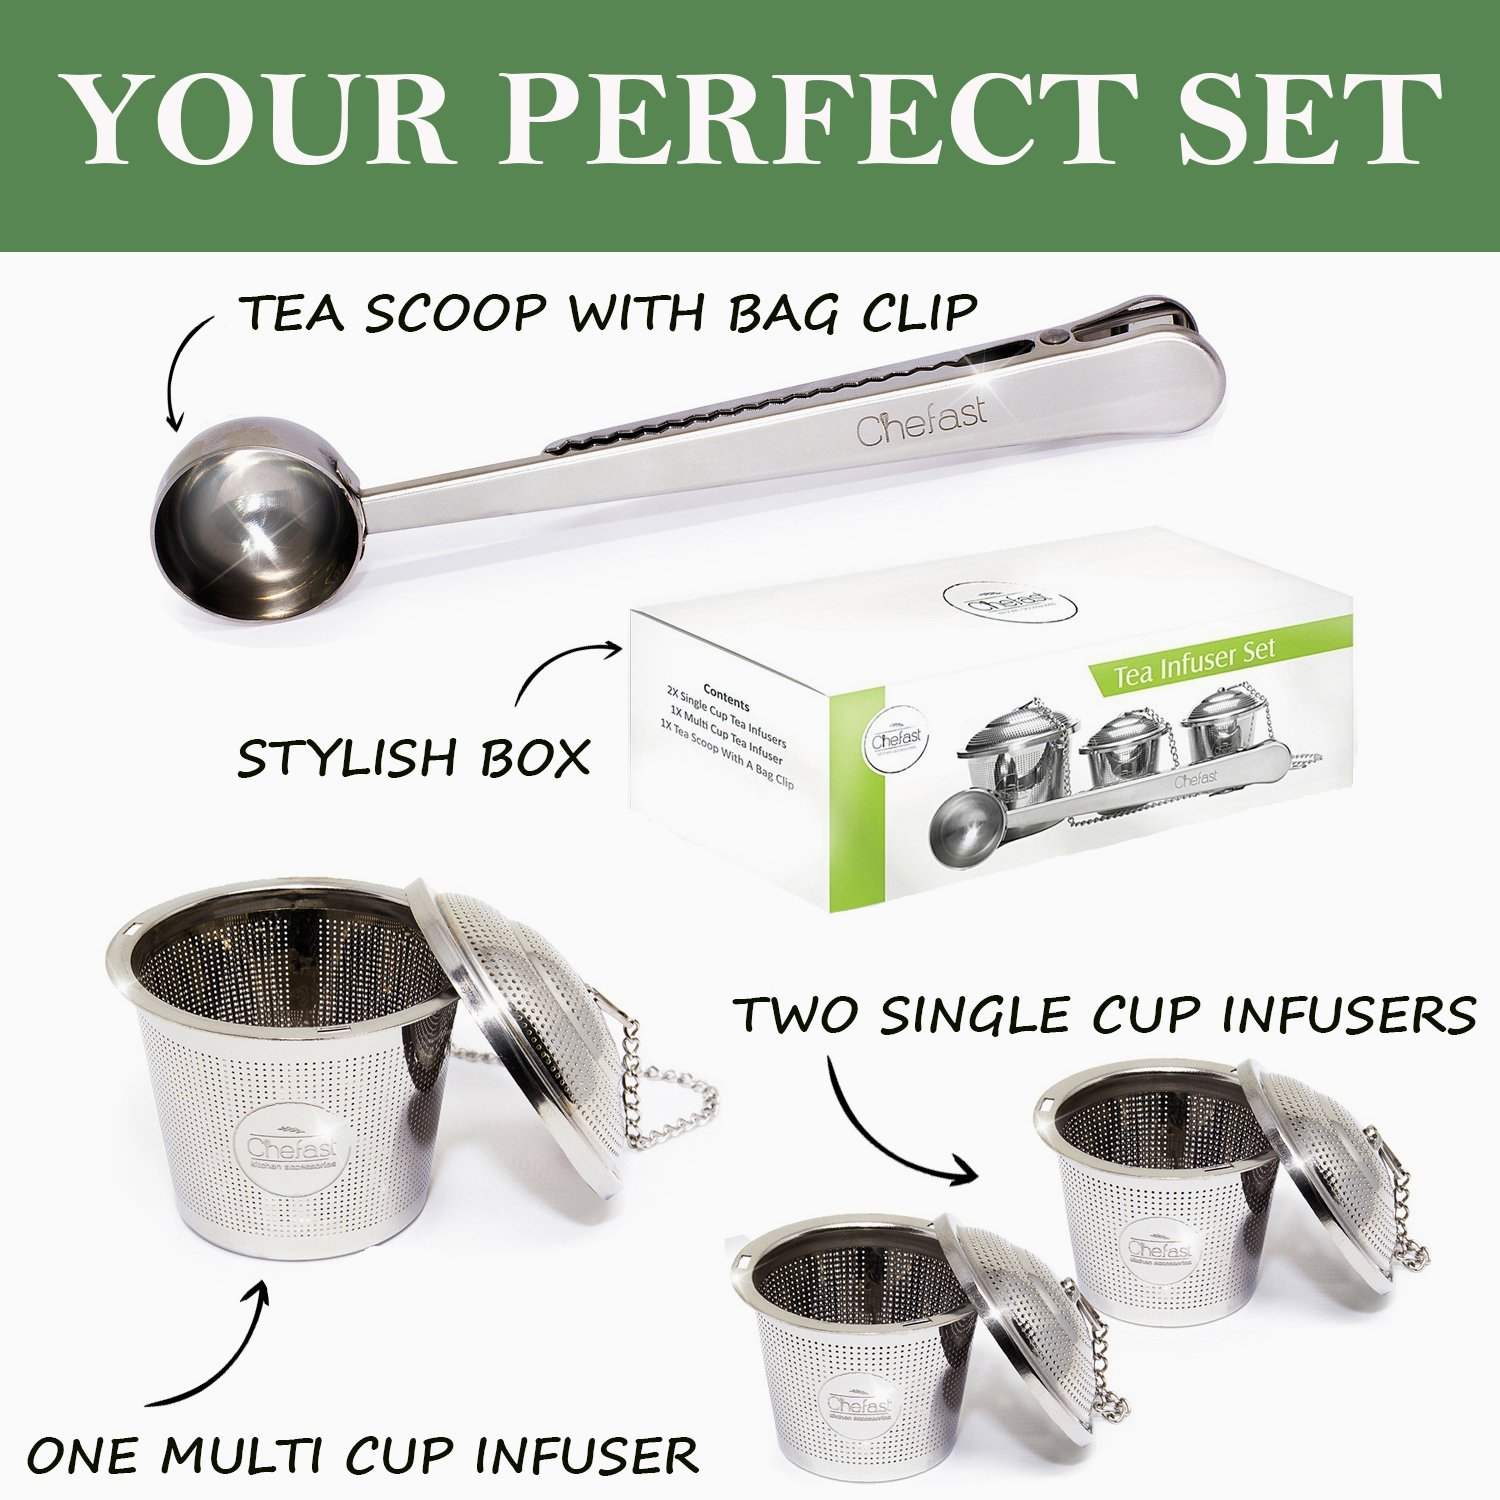 Tea Infuser Set by Chefast (2+1 Pack) - Combo Kit of 1 Large and 2 Single Cup Loose Leaf Infusers, Plus Metal Scoop with Clip - Reusable Stainless Steel Strainers | Diffusers | Balls | Steepers by Chefast (Image #2)